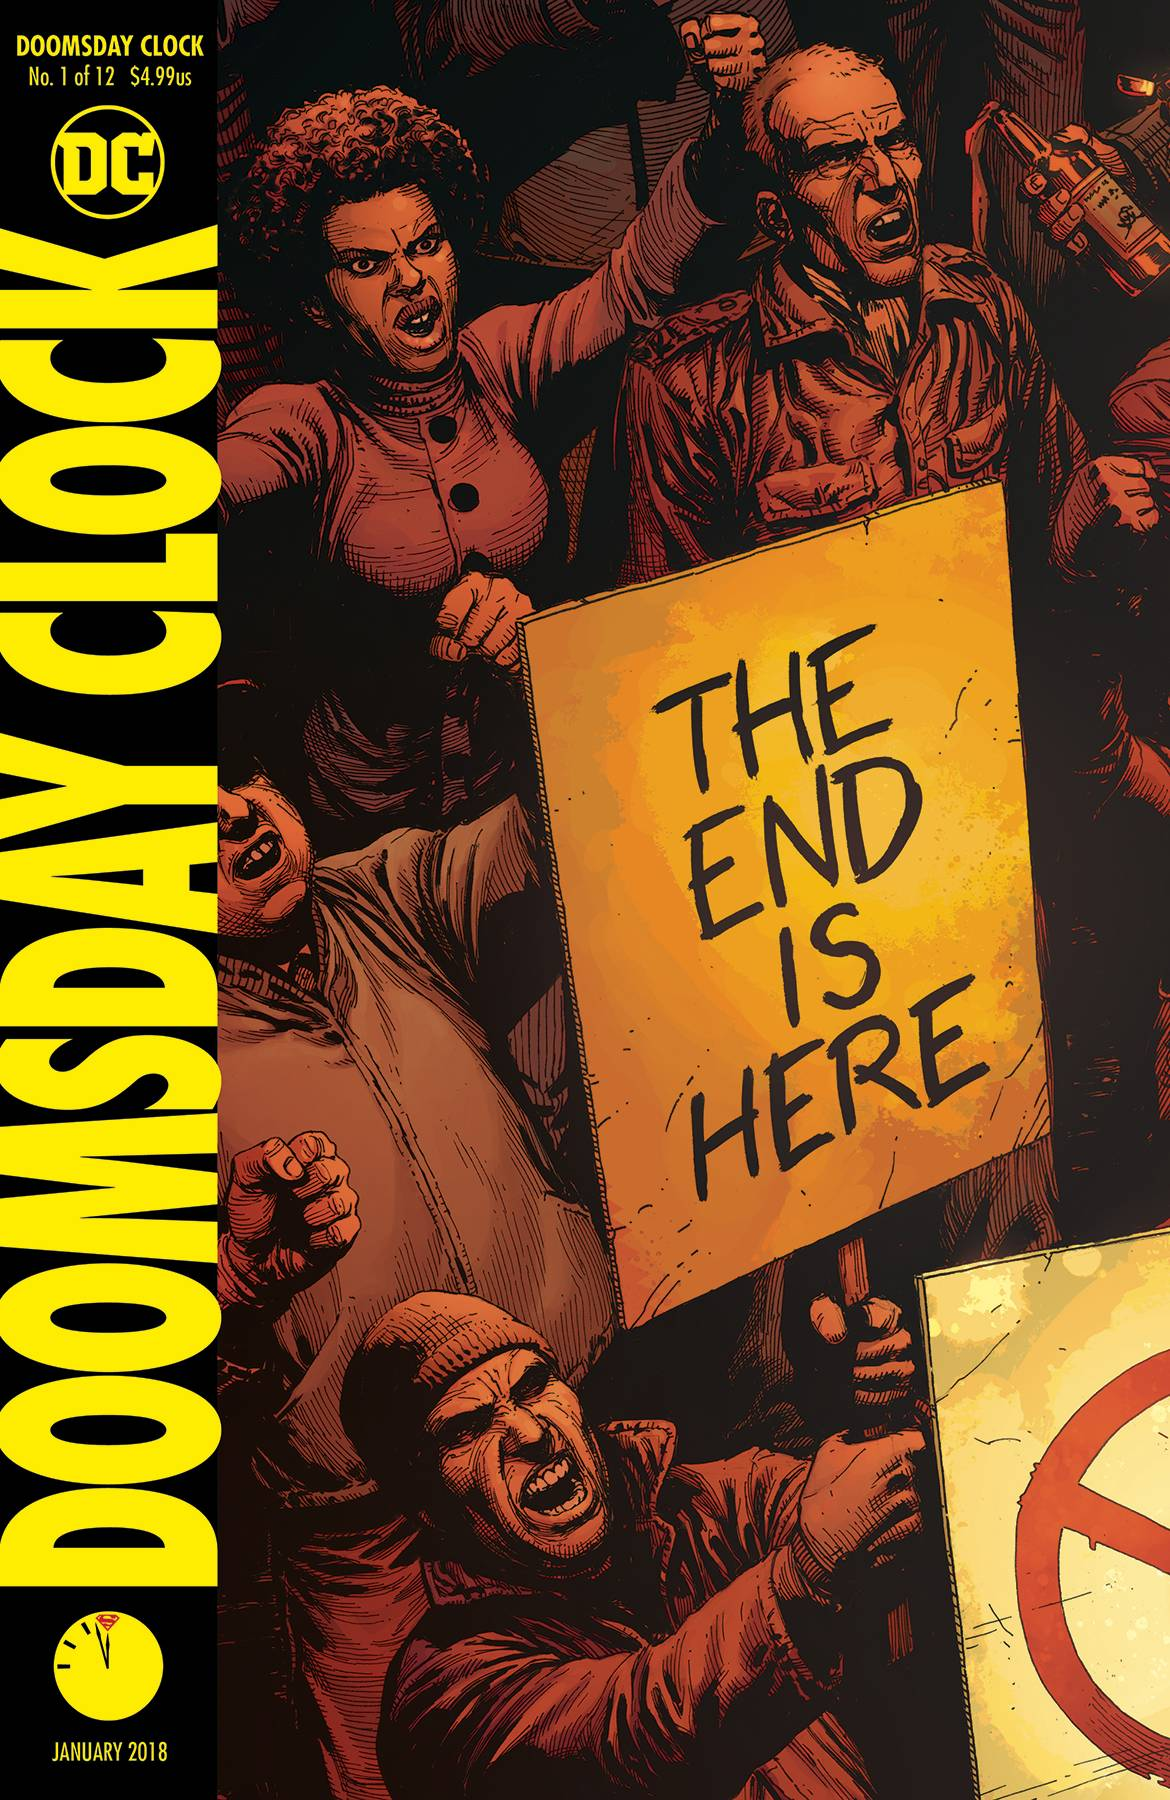 DOOMSDAY CLOCK #1 (OF 12) <span class=ttlyear>2017</span>